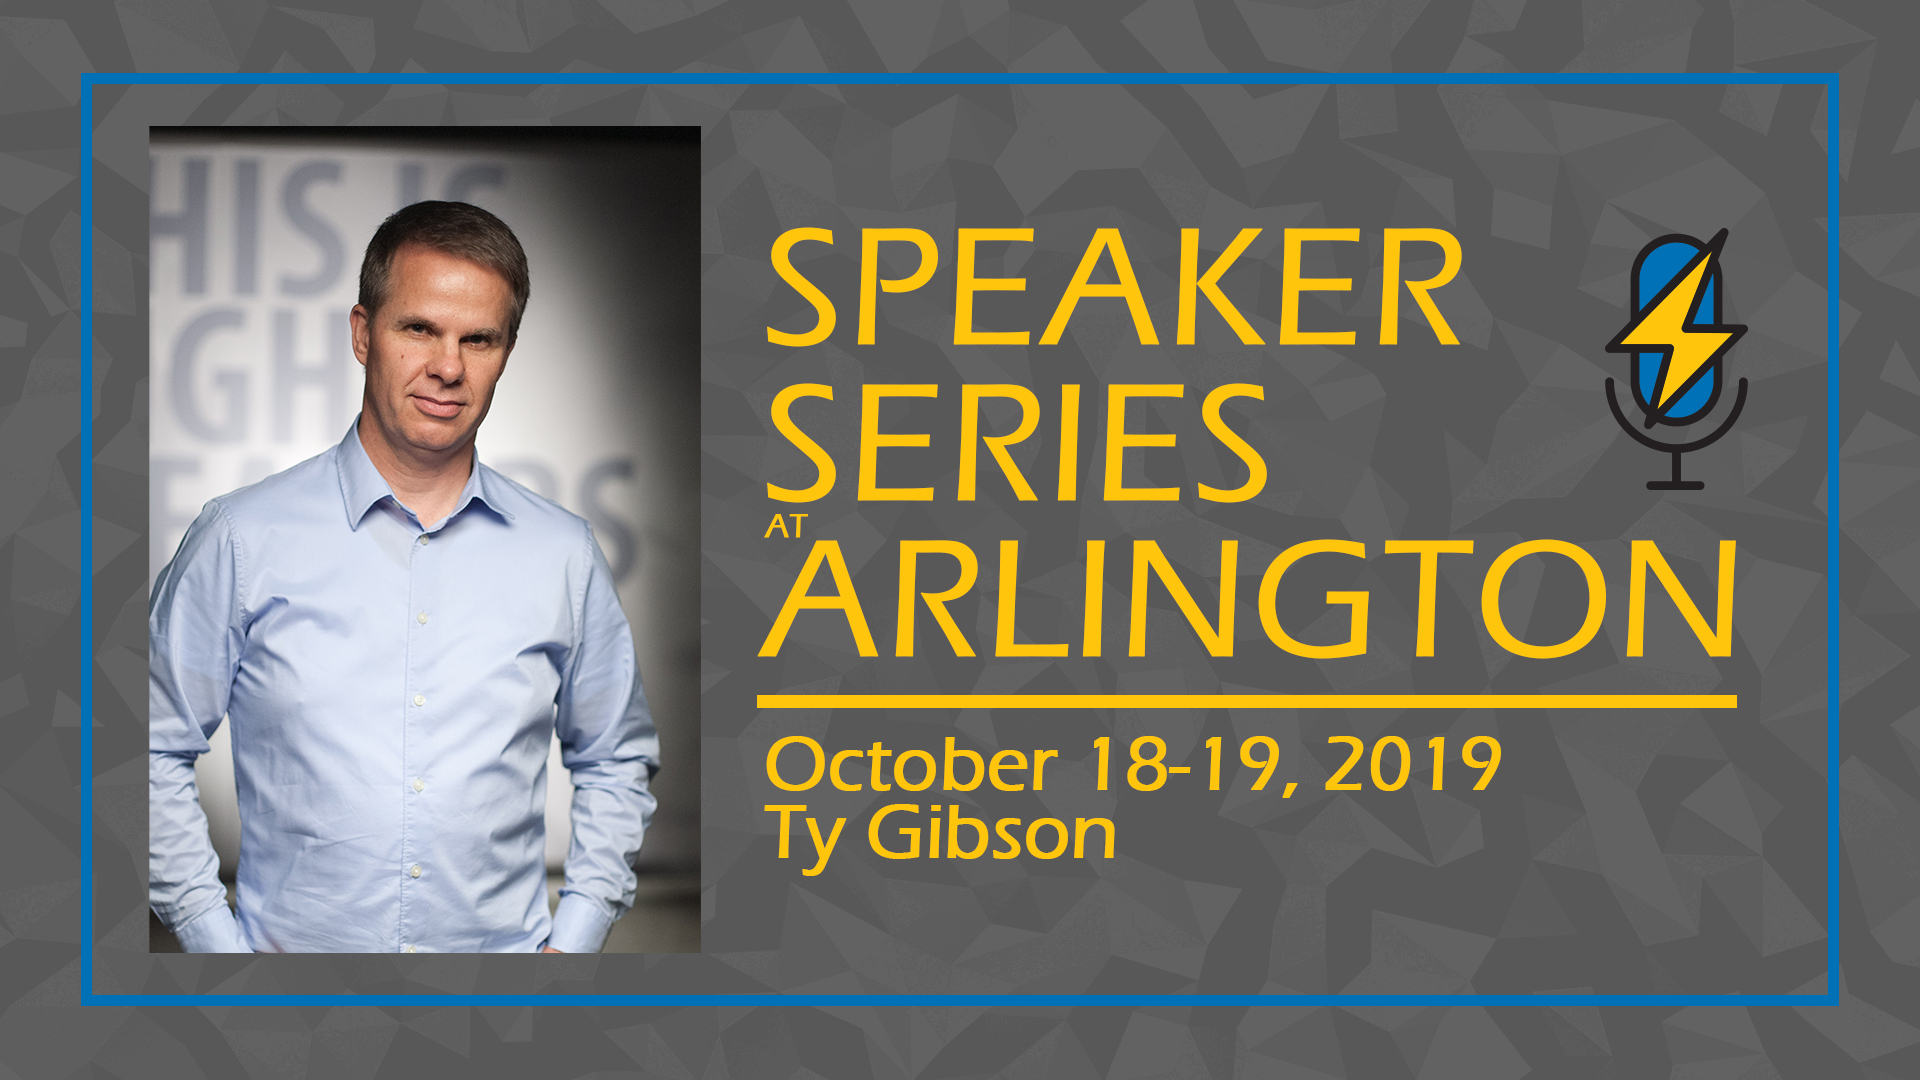 SAVE THE DATE! SPEAKER SERIES @ ARLINGTON  Save October 17-19, 2019 as Pastor Ty Gibson will be our featured speaker. Gibson is Co-director of Light Bearers and pastor of Storyline Adventist Church in Eugene, Oregon. A passionate communicator with a message that opens minds and moves hearts, Ty teaches on a variety of topics, emphasizing God's unfailing love as the central theme of the Bible. He has authored eight best-selling books. Ty and his wife Sue have three adult children and two grandsons.